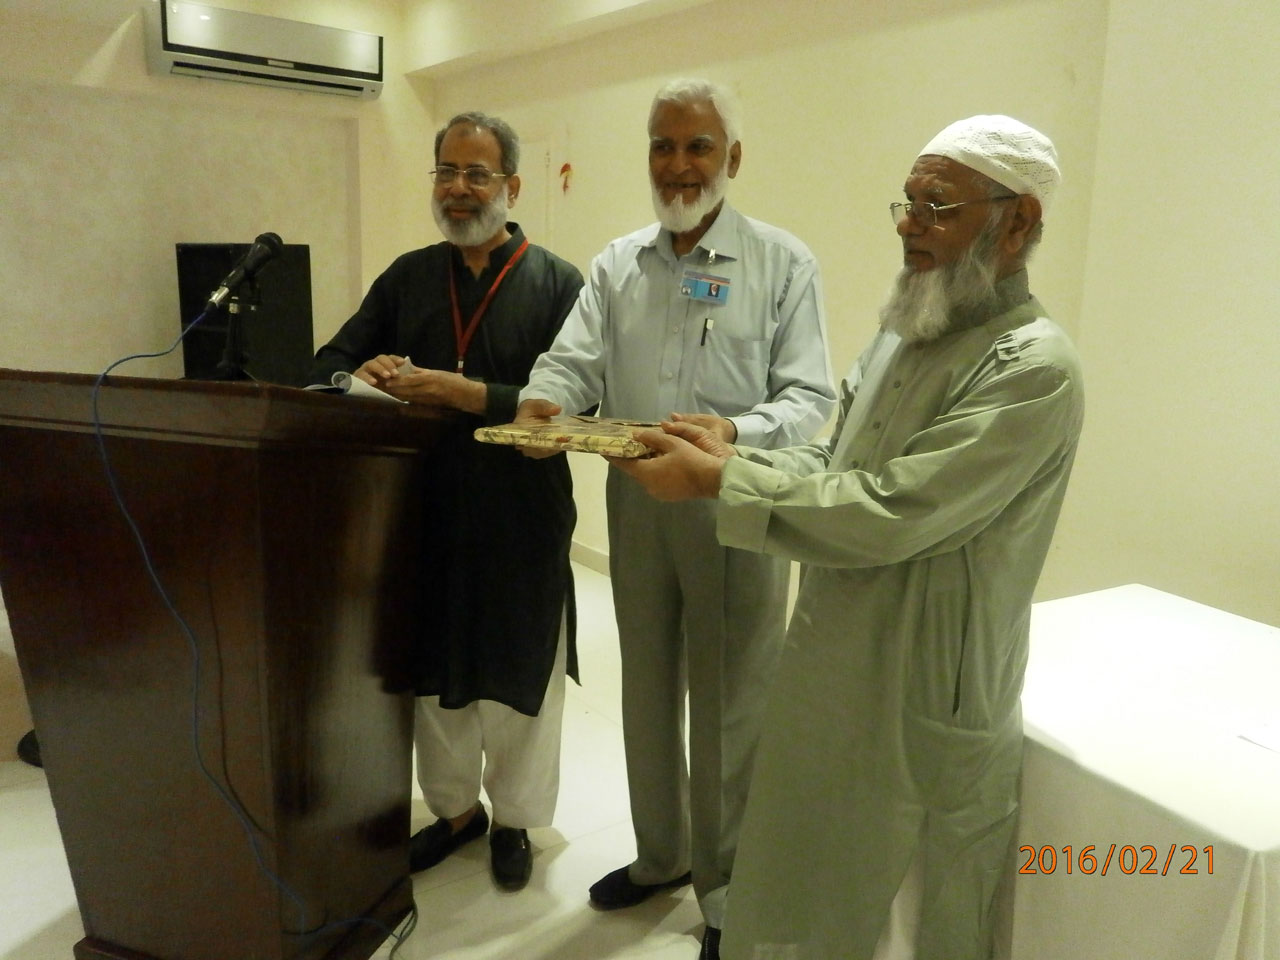 Kamal A. Farooqi is presenting a gift to Ataullah on his Happy Birthday